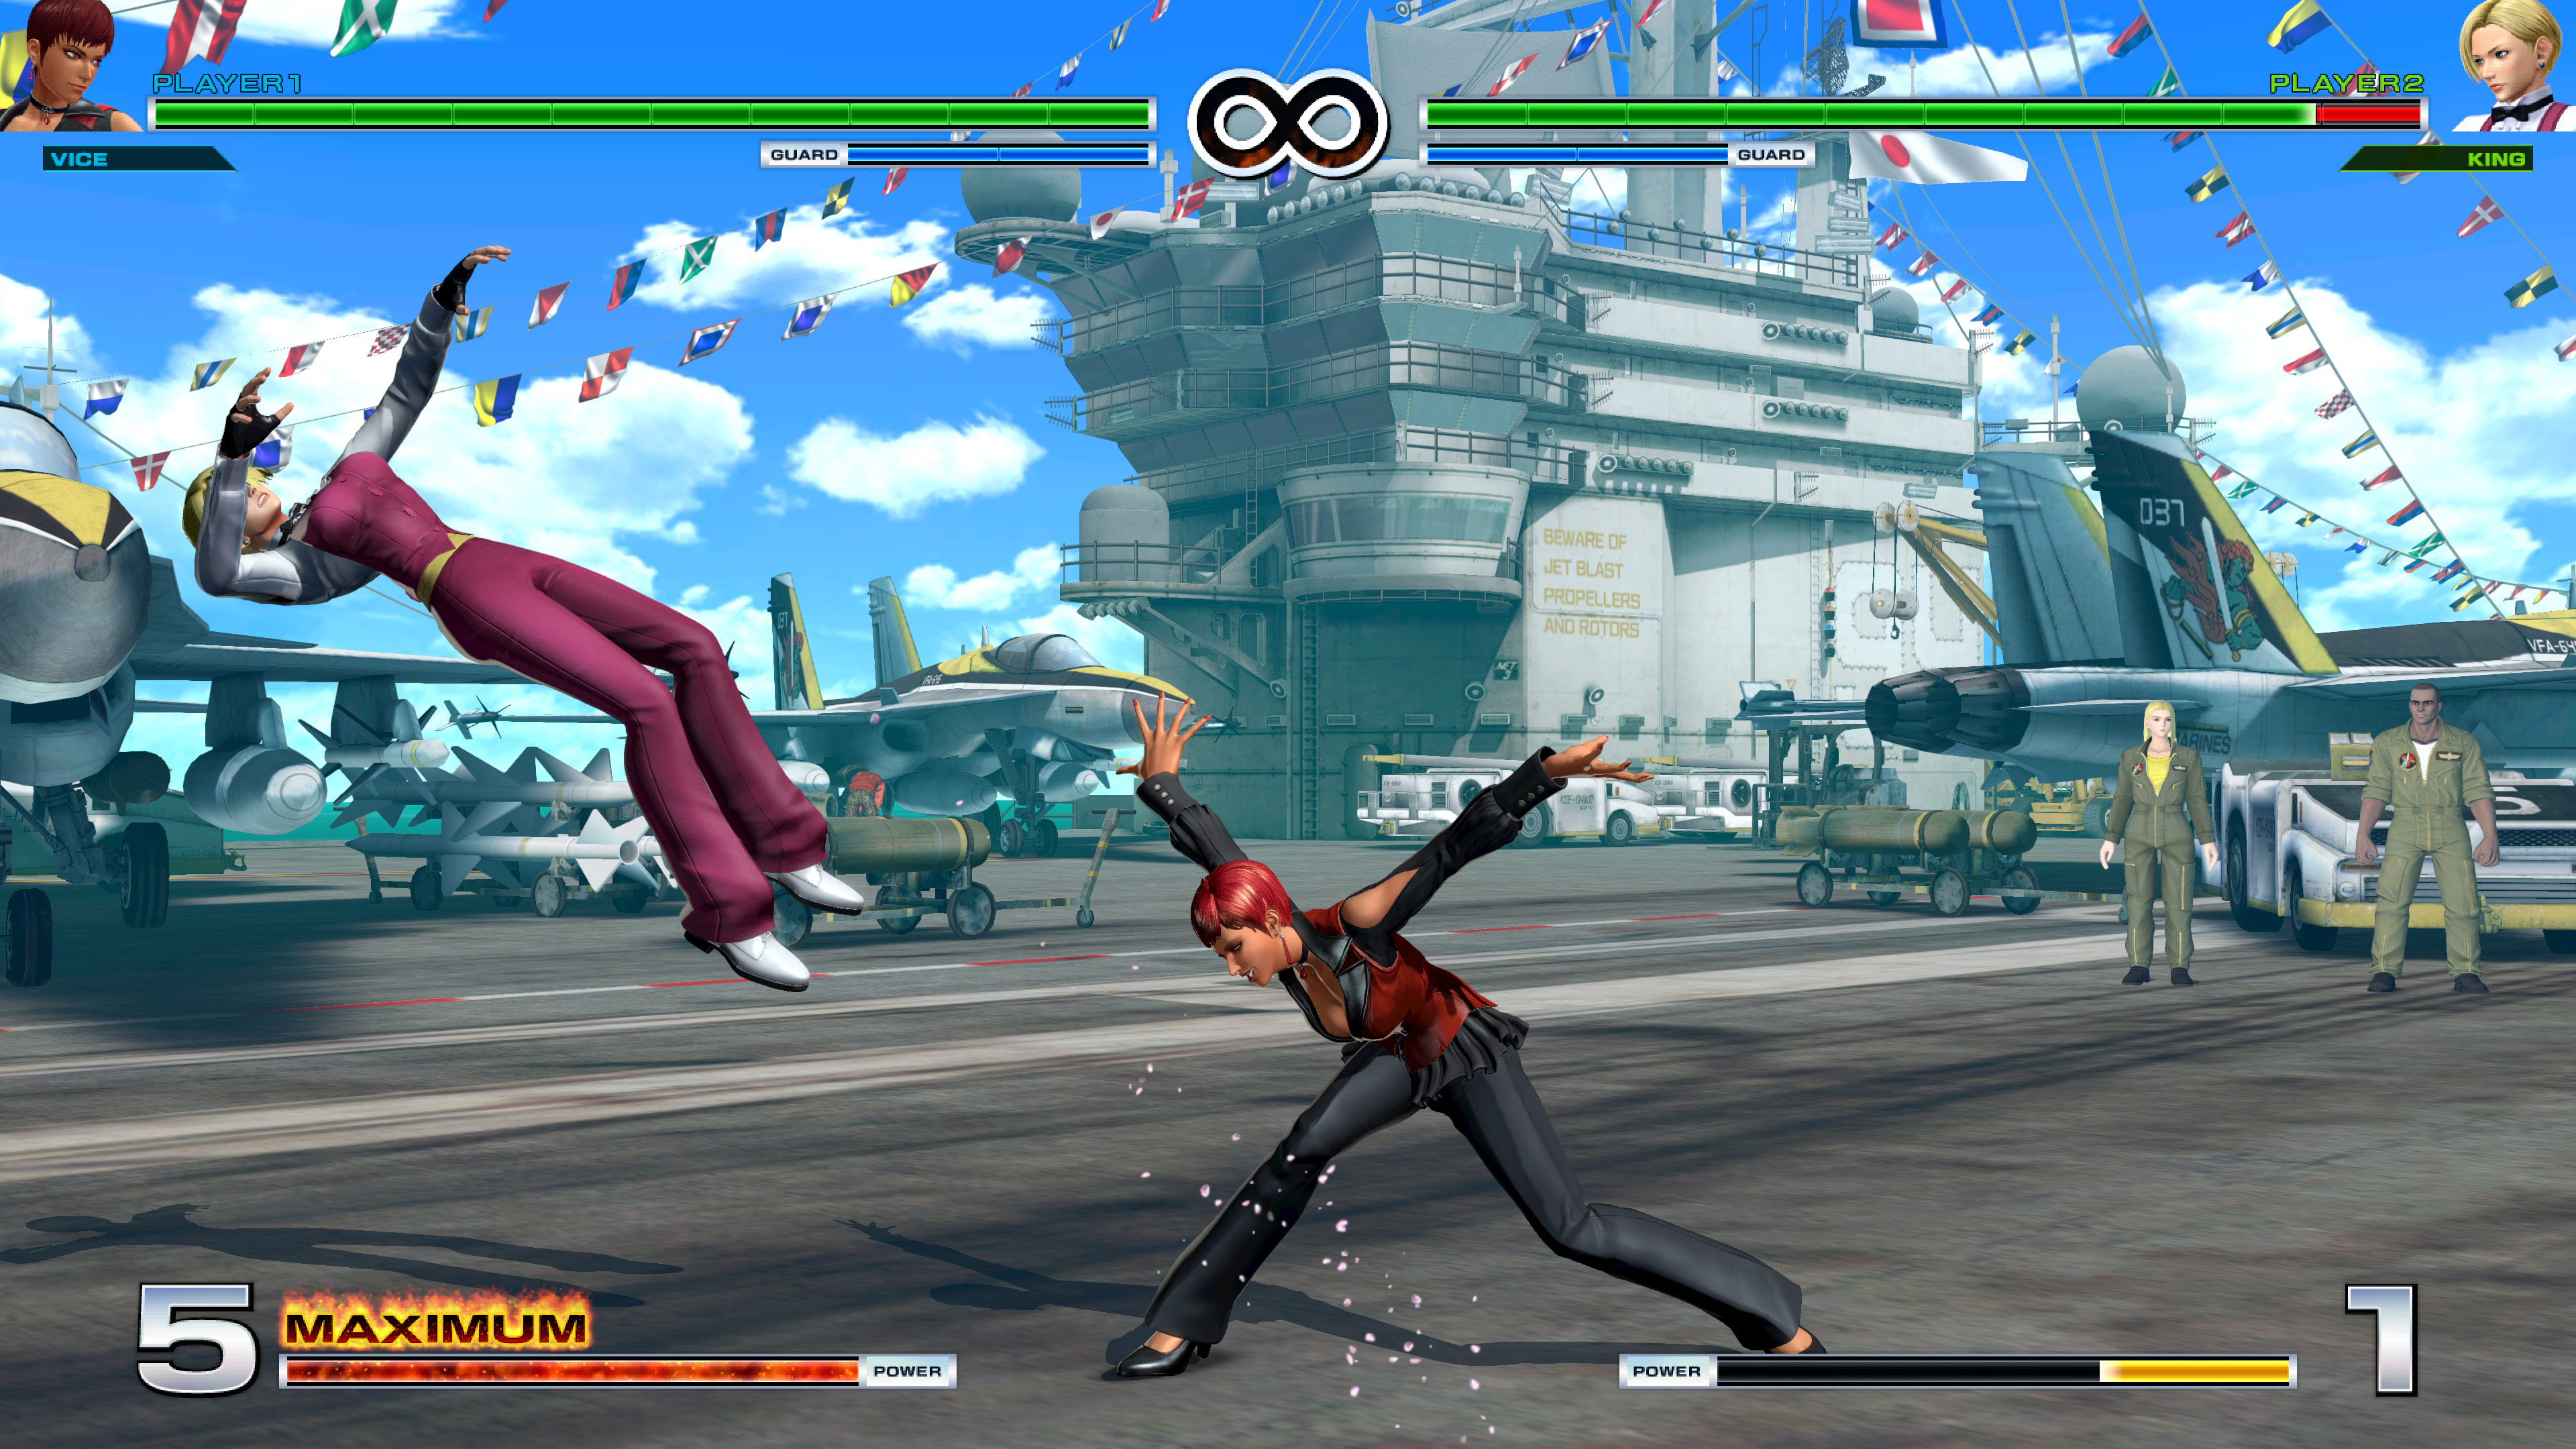 Super Hi Res KOF 14 11 Out Of 20 Image Gallery